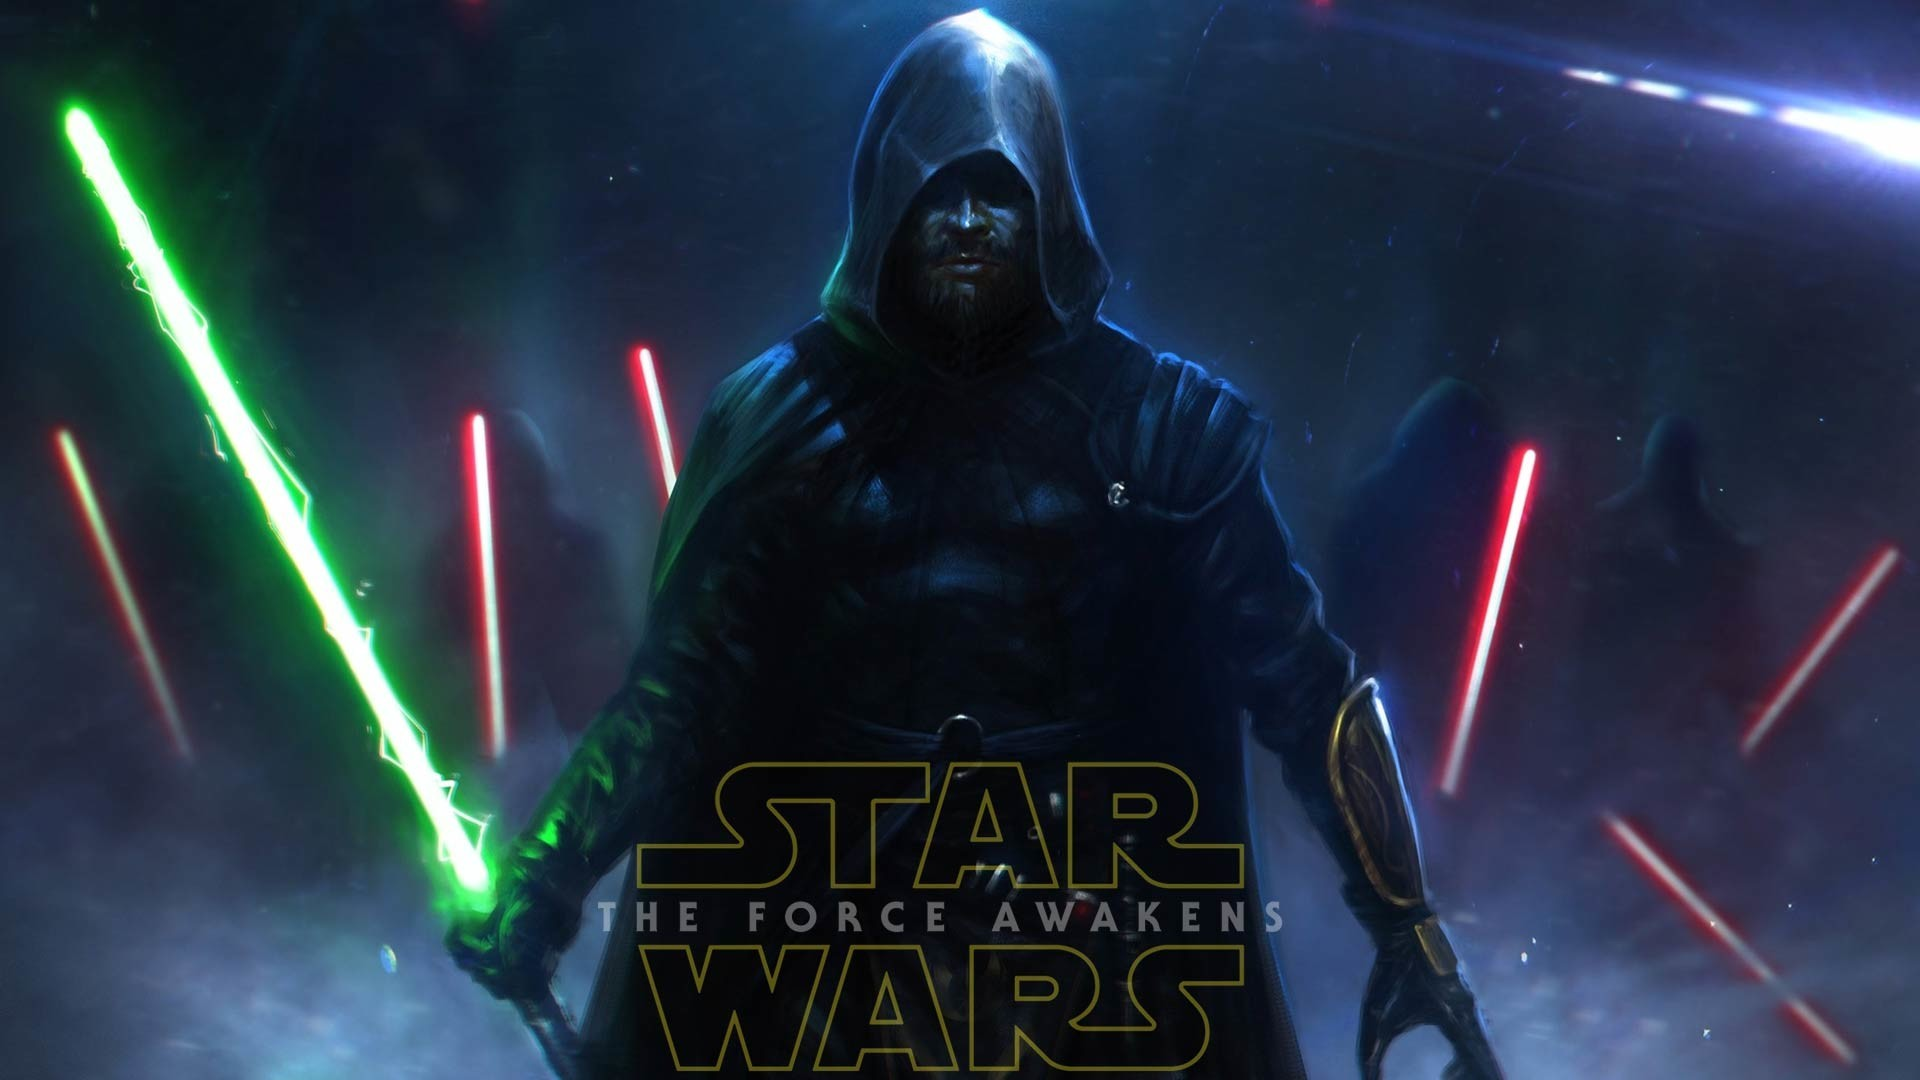 2560x1440 Star Wars The Force Awakens Wallpapers Mobile For Desktop Wallpaper 2560 x 1440 px 1.08 MB battle return iphone sith vs jedi symbol sith